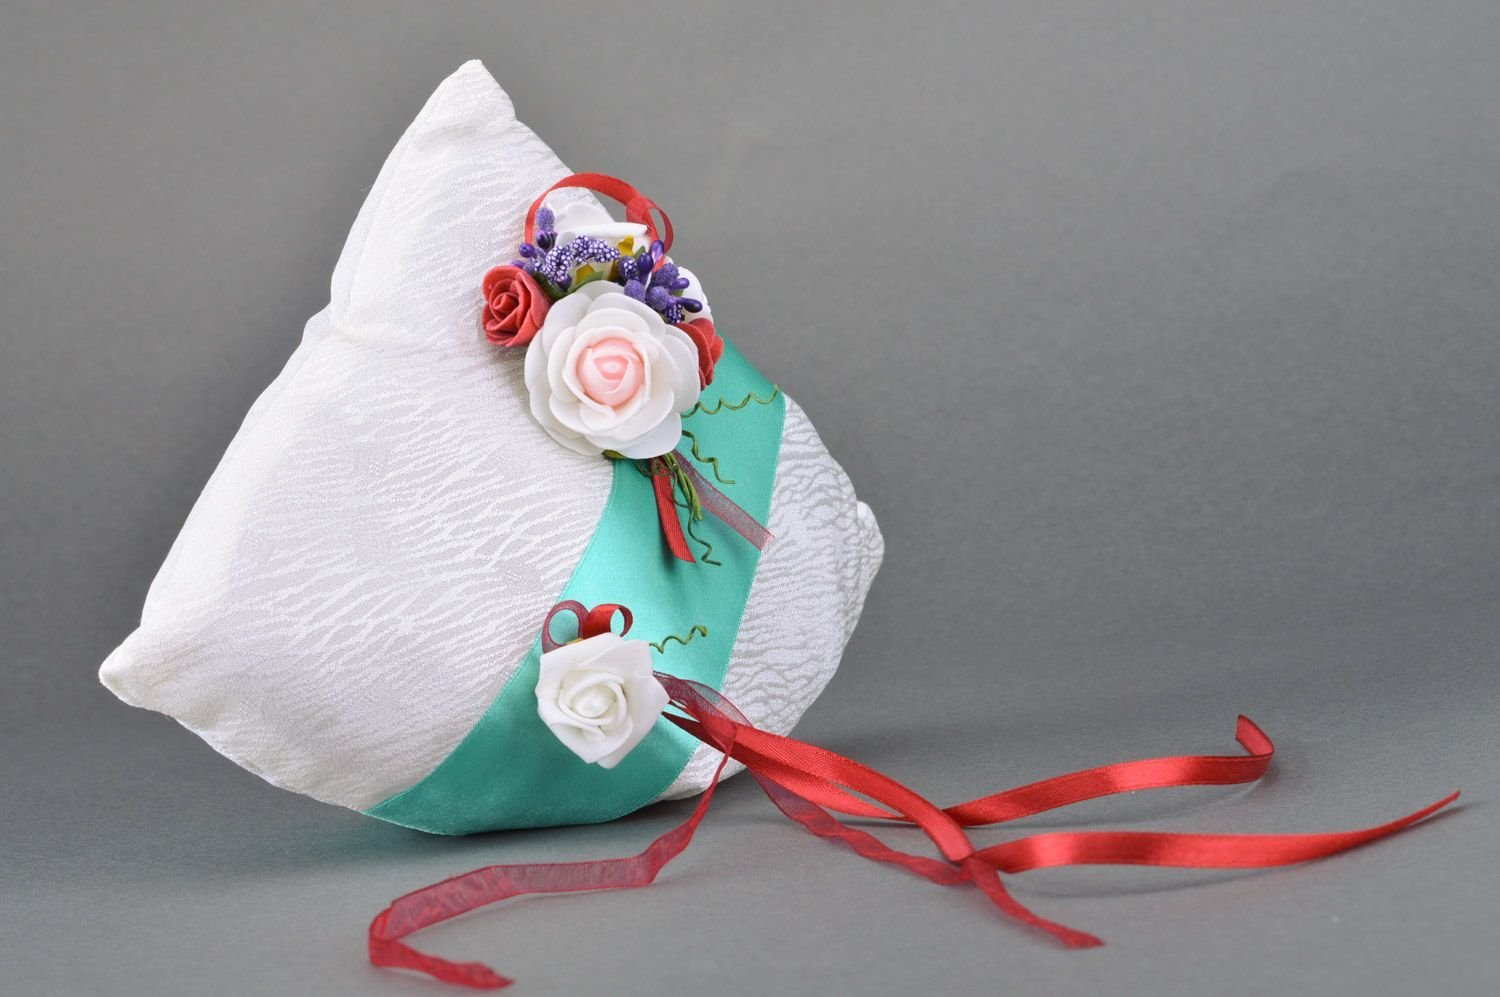 Large Handmade Ring Bearer Pillow Sewn of Satin Fabric with Ribbons and Flowers